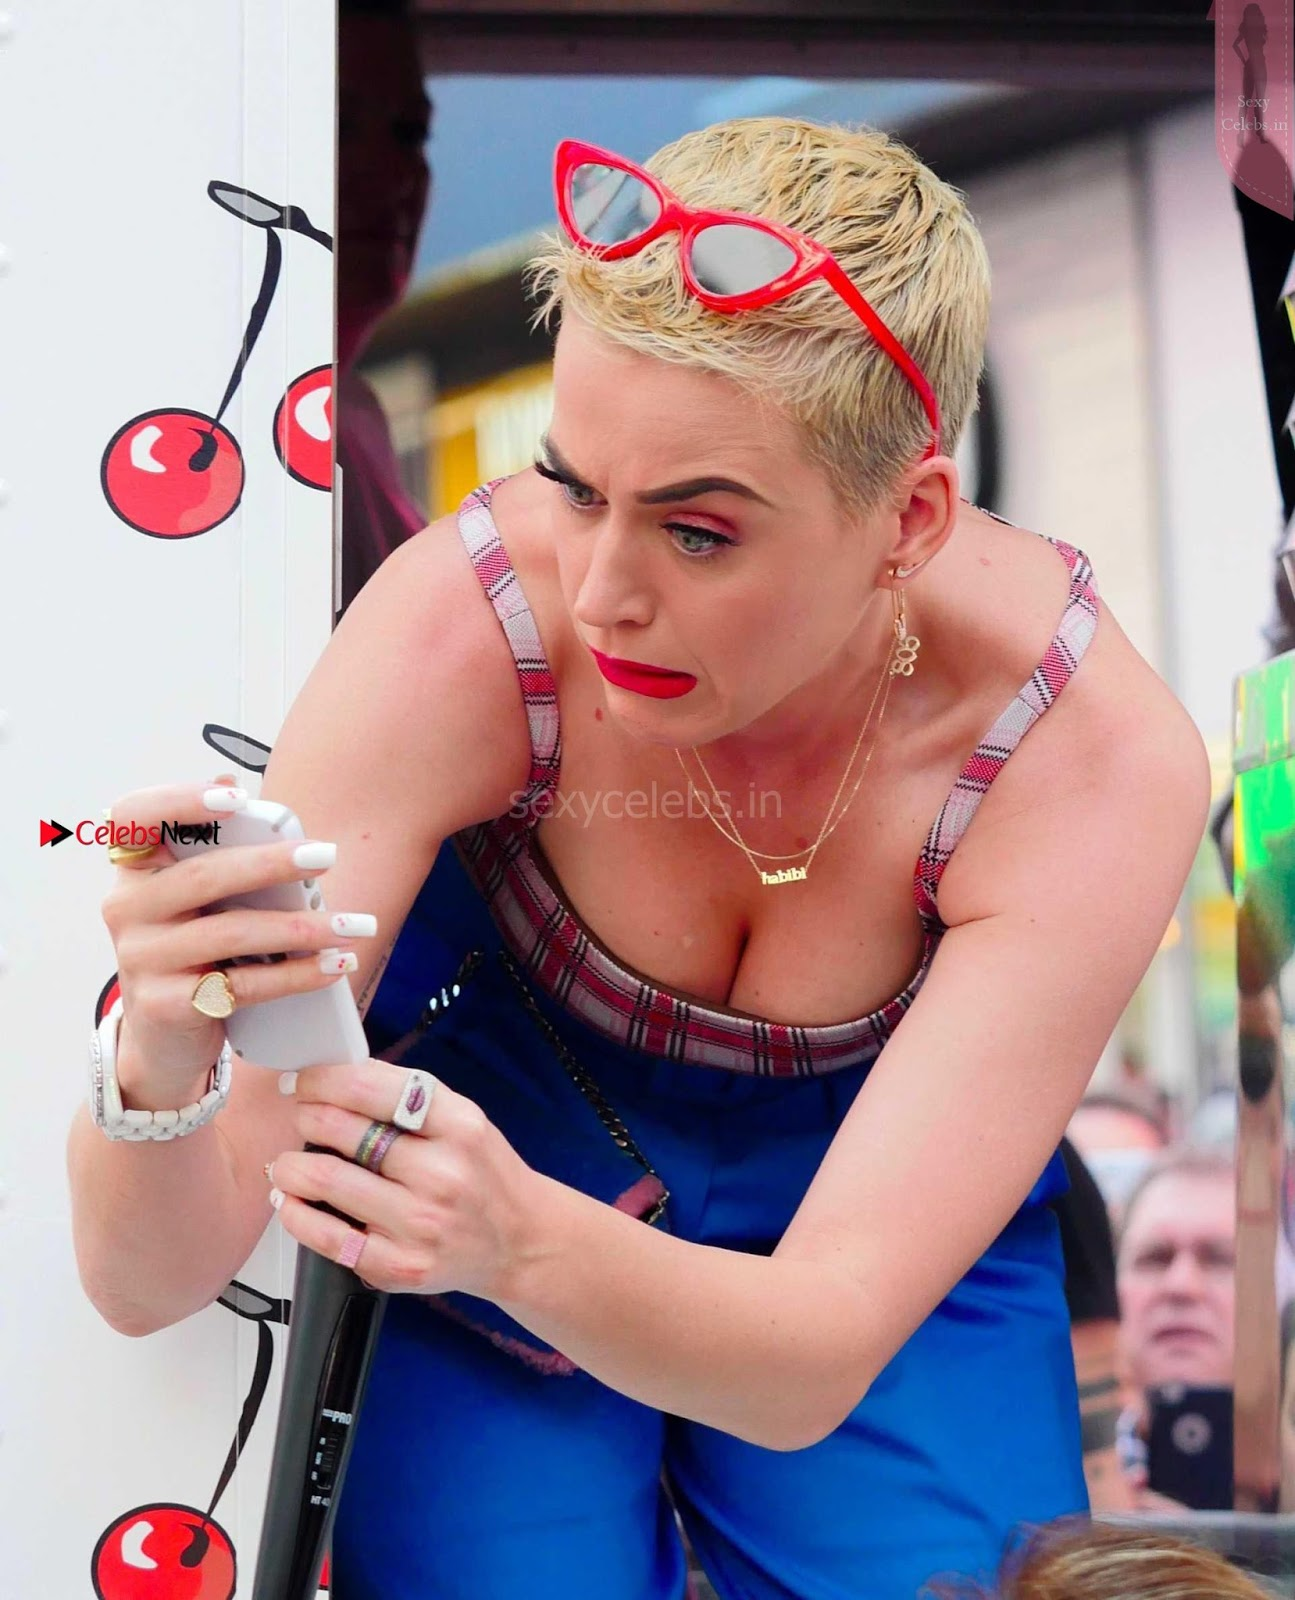 Katy Perry Sexy Cleavages Katy Perry so happy to expose her boobs bending down in low cut deep neck top wow